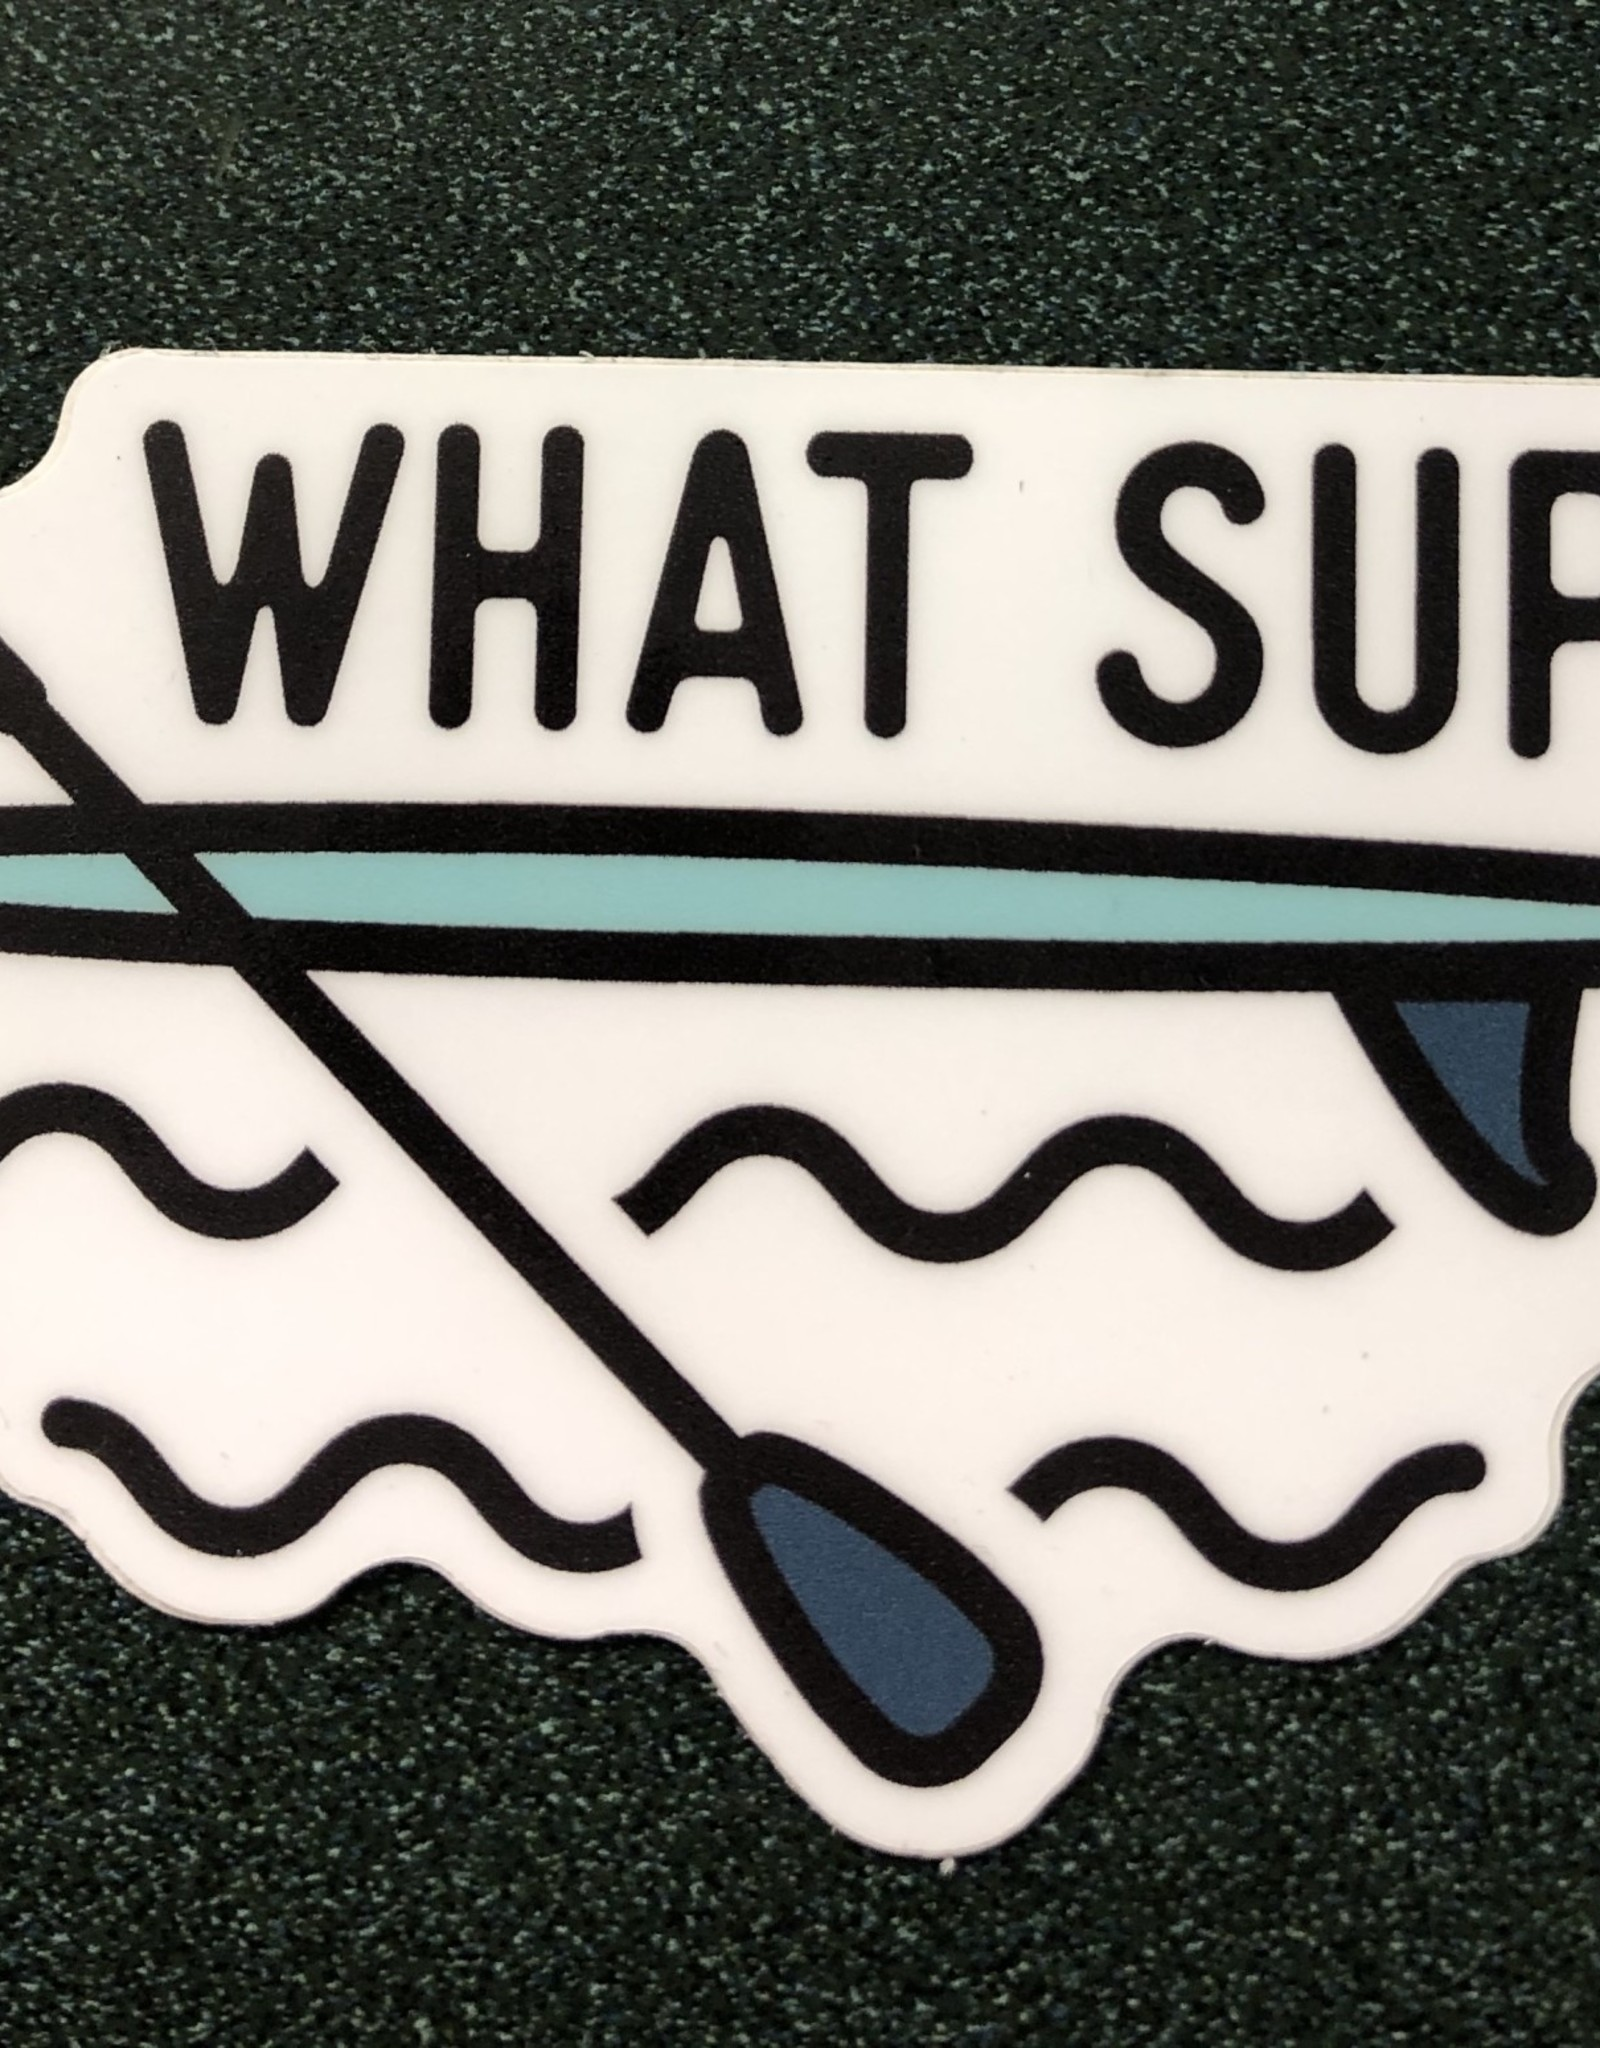 Stickers NW What Sup?